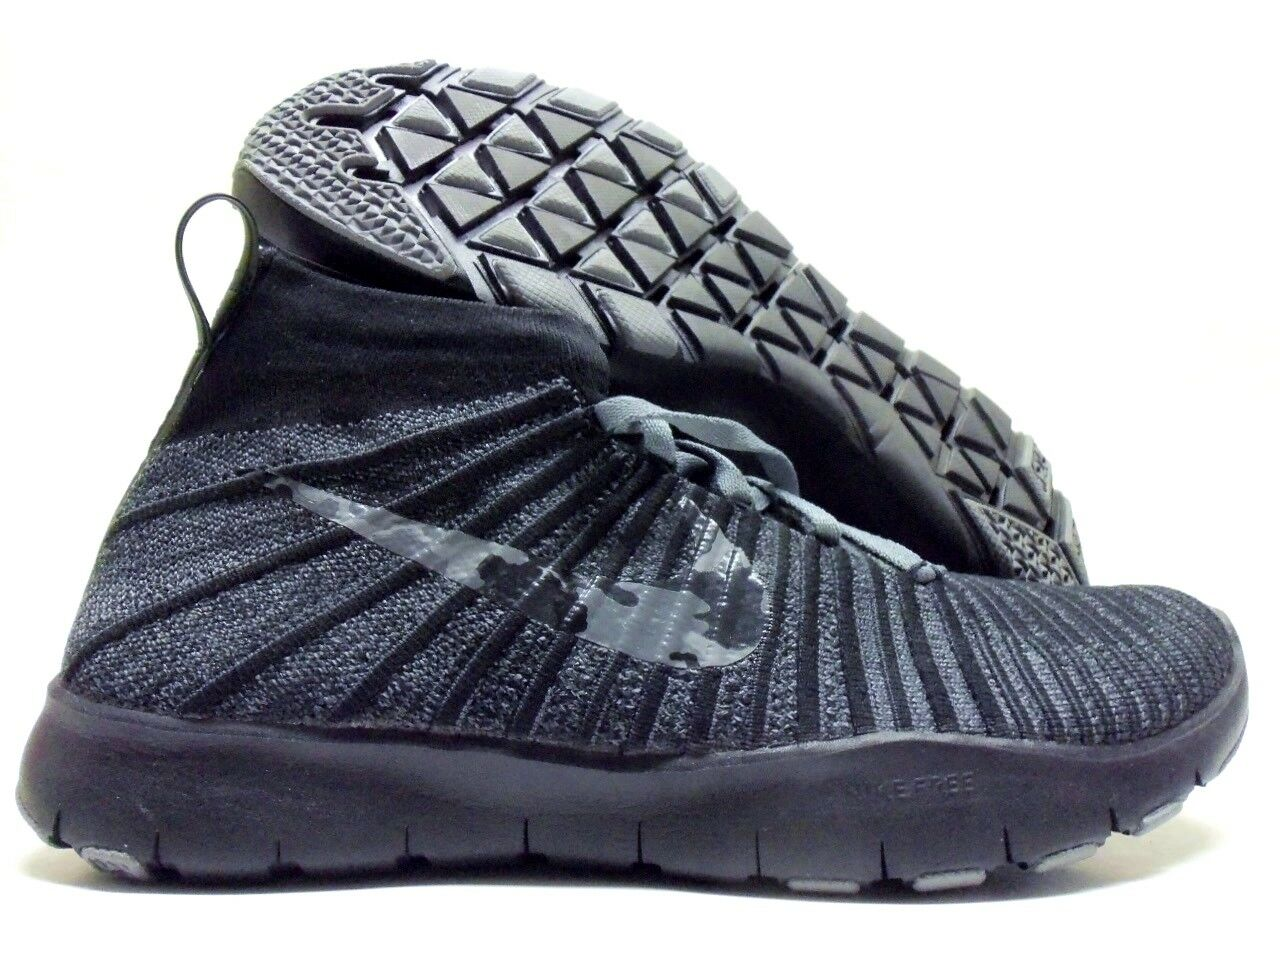 NIKE FREE RUN HIGH FLYKNIT ID BLACK/ANTHRACITE SIZE MEN'S 10.5 [845327-992]